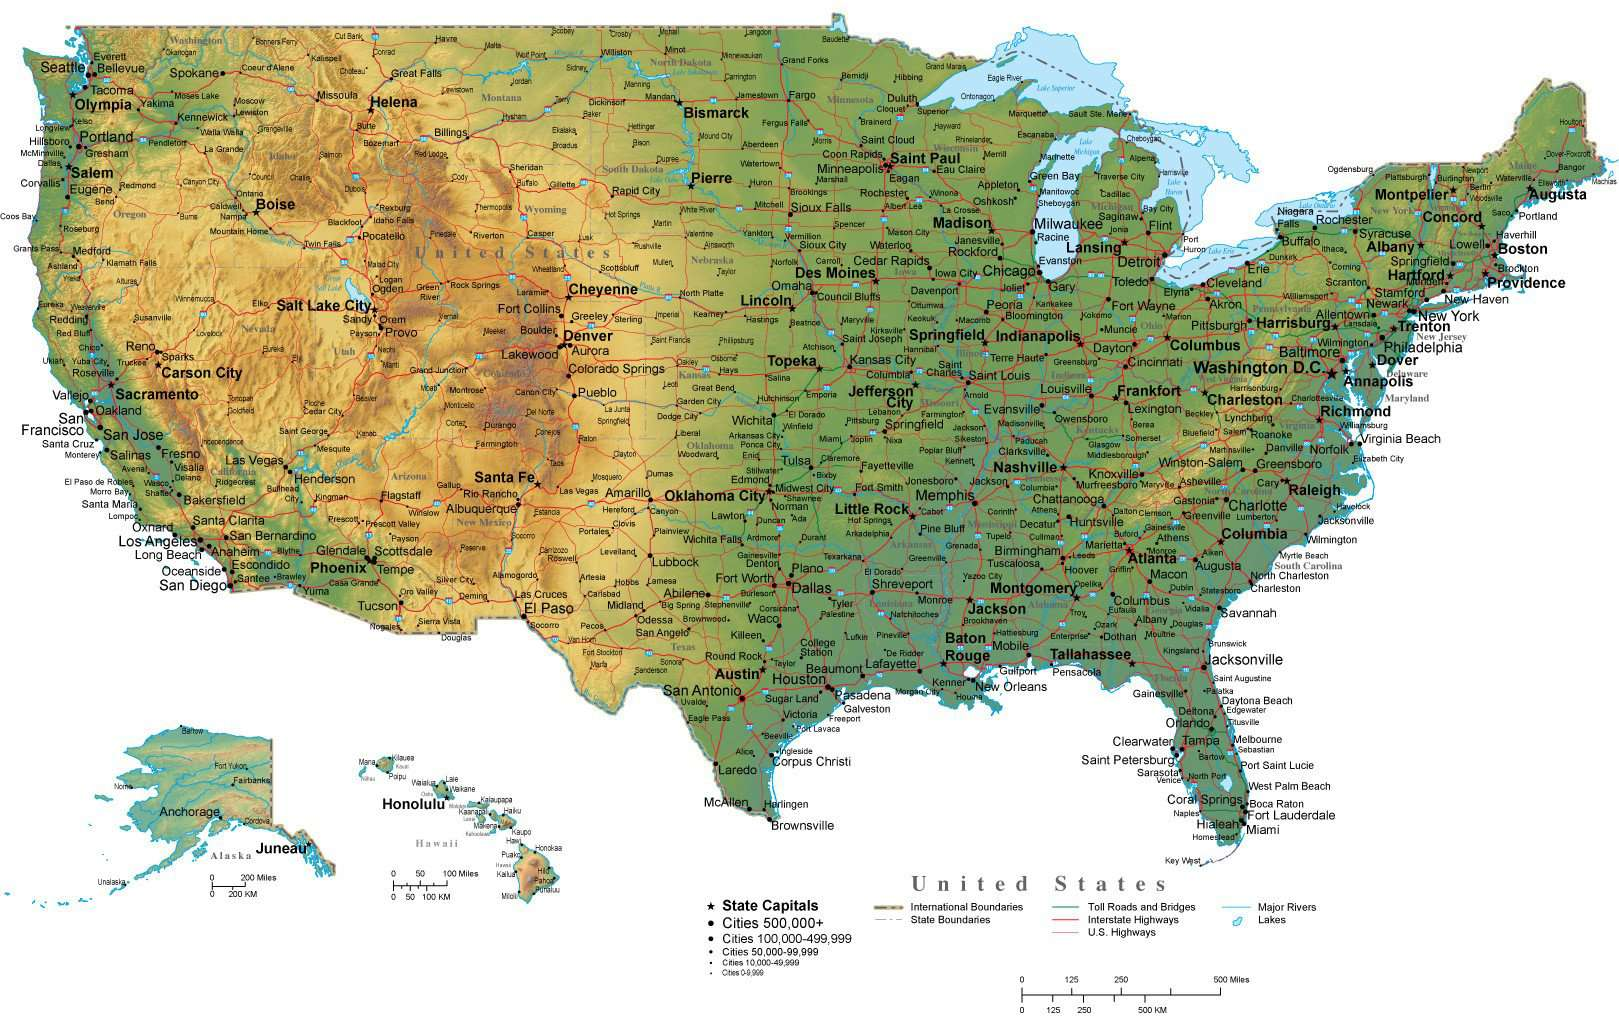 USA Map Rectangular Projection Plus Terrain, Cut-Out Style Us Map Terrain Model on us physical map, us journey map, us frontier map, us heat map, us territorial sea map, us infrastructure map, us tundra map, us explorer map, terrain features on map, us hydrology map, us terrain park council, us tree cover map, us environment map, us culture map, us santa fe map, us avalanche map, us cloud cover map, us population density map, us snowfall map, us climate map,